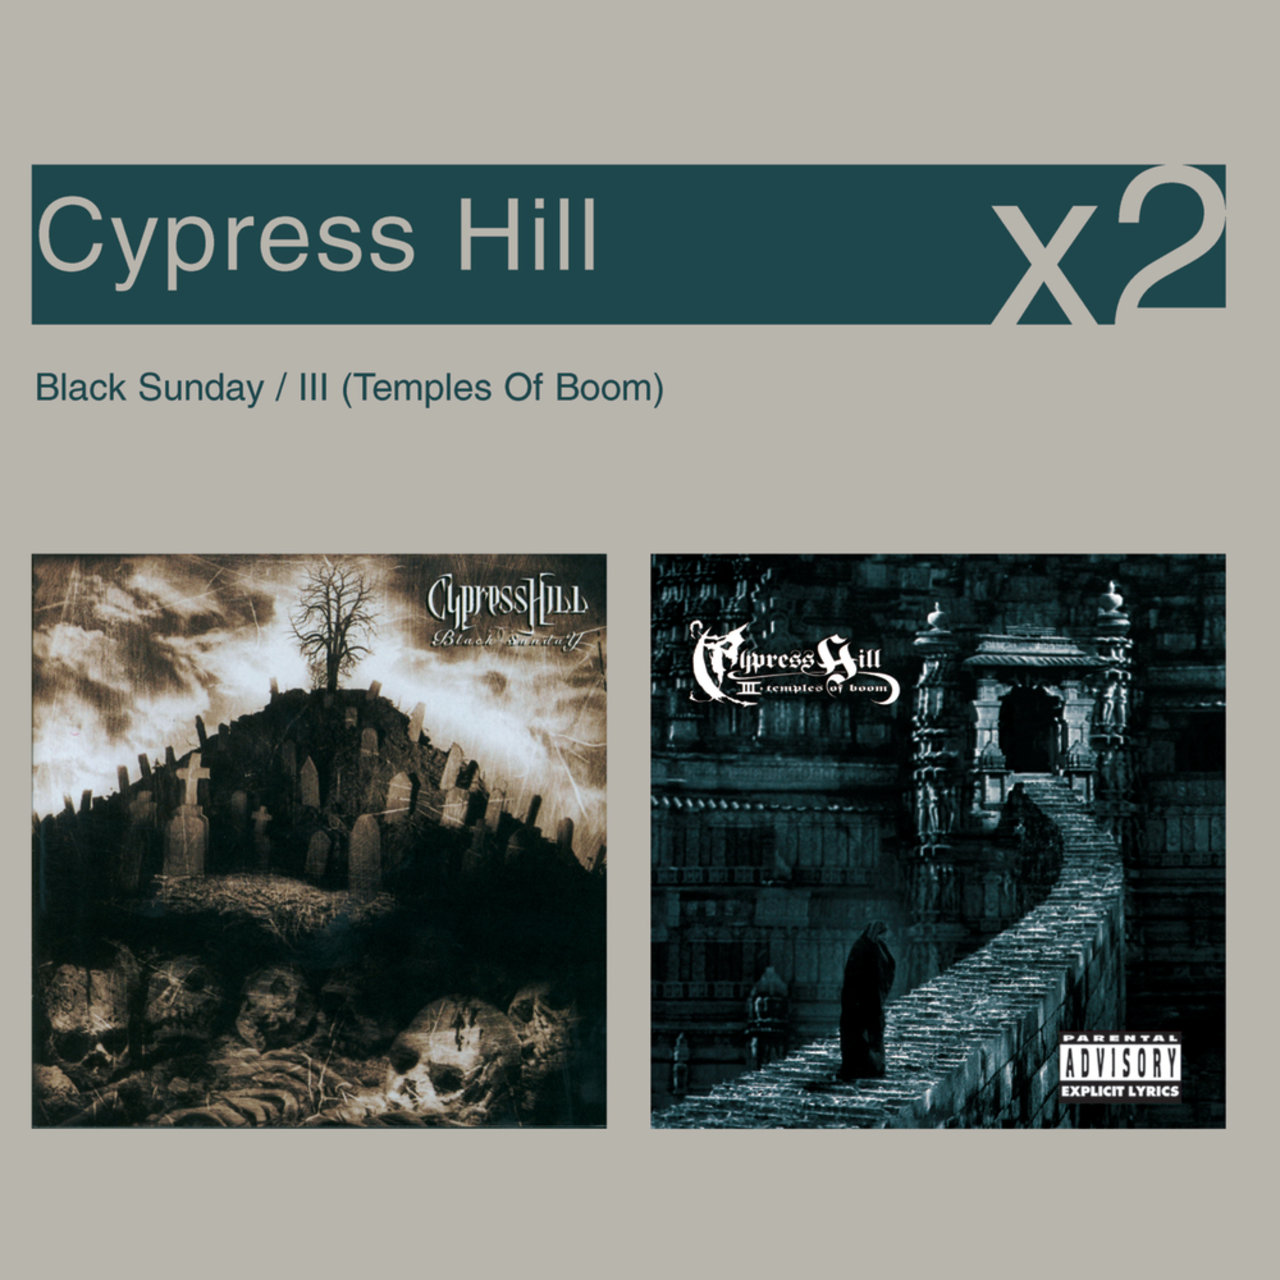 Black Sunday / III Temples Of Boom